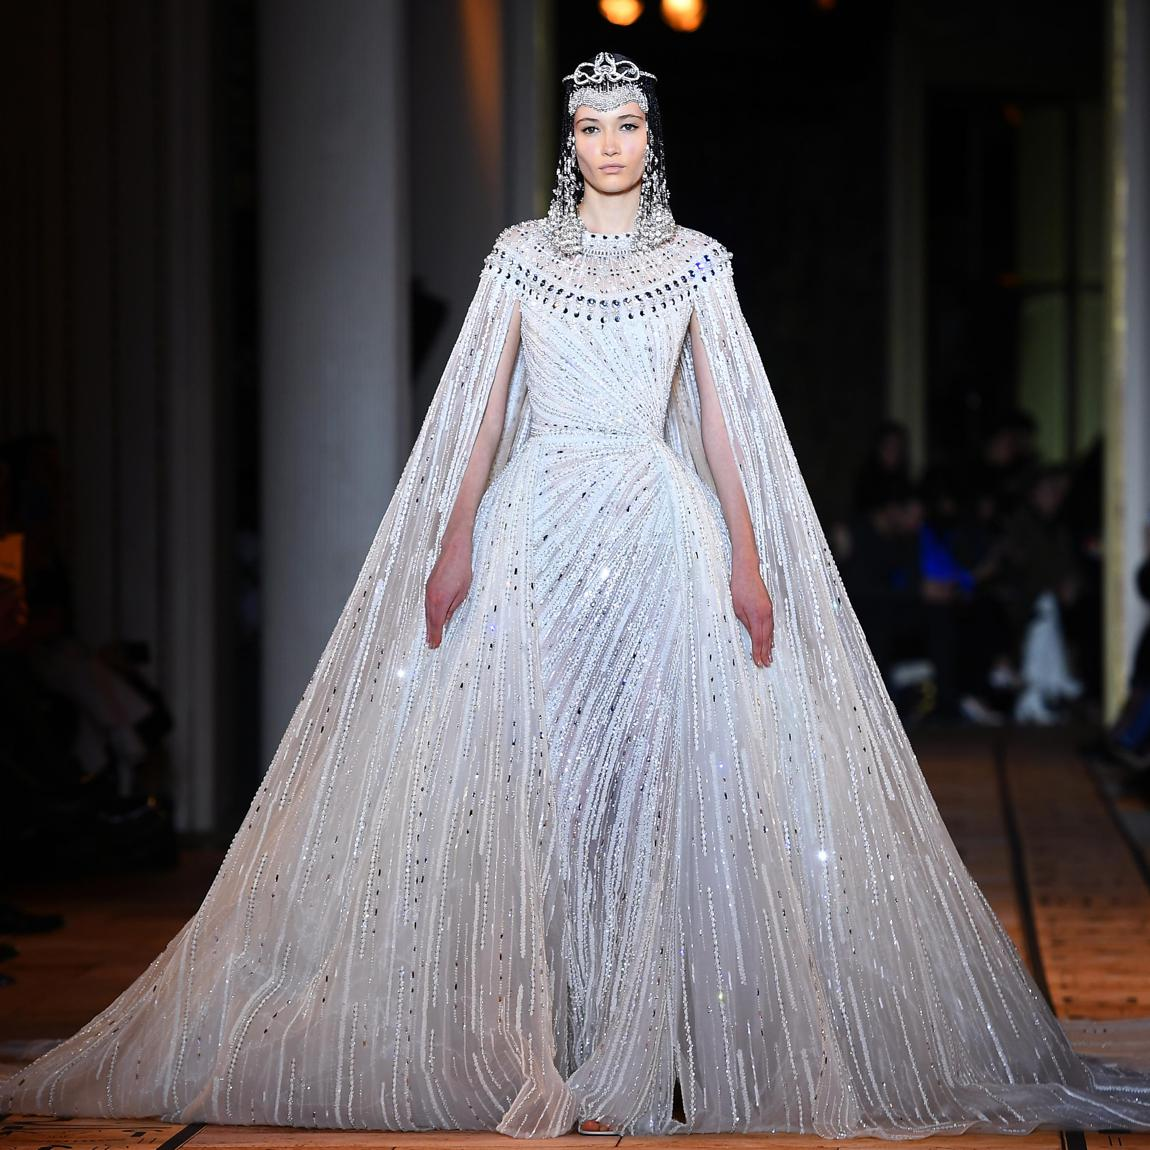 9 Of The Most Expensive Wedding Dresses Of 2020